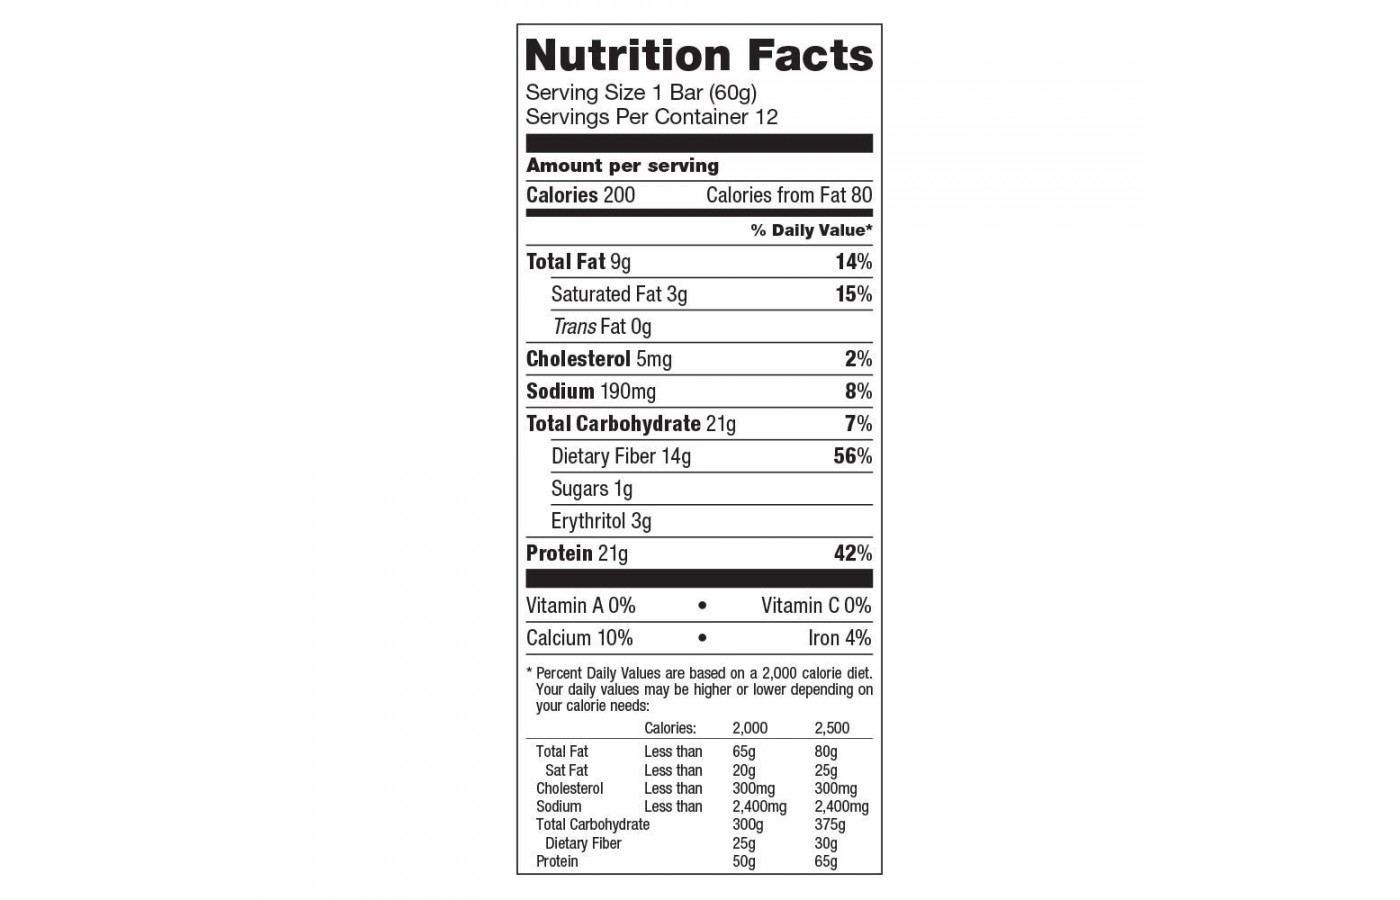 Quest Nutrition Facts